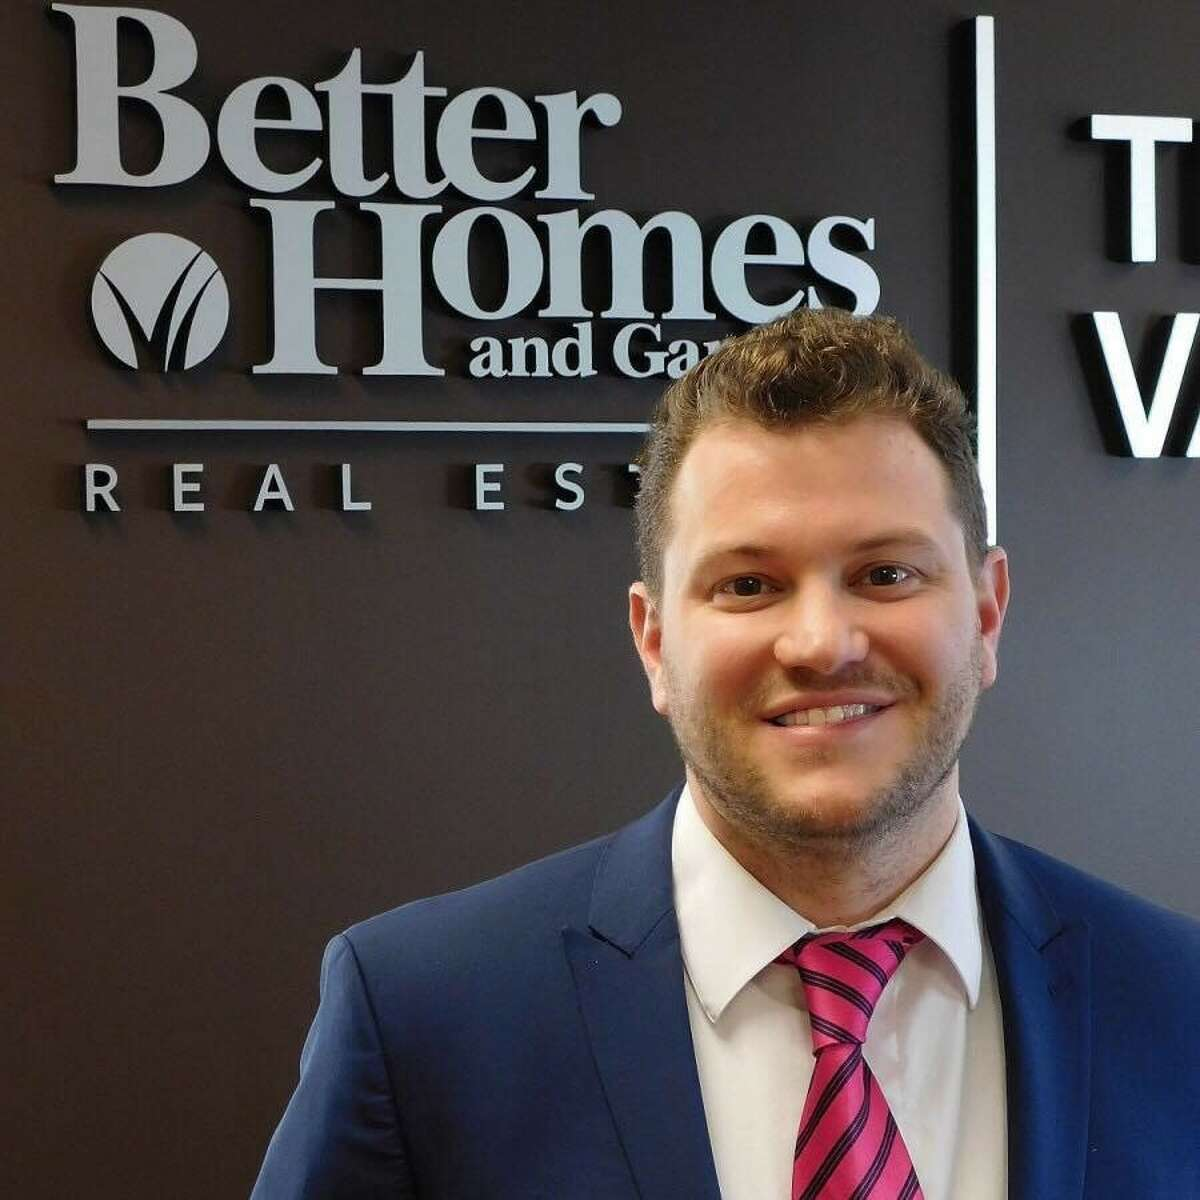 Adam Popham, 32, joined Better Homes and Gardens two years ago, and said his experience dealing with student debt and technology give him an advantage when working with millennial clients.